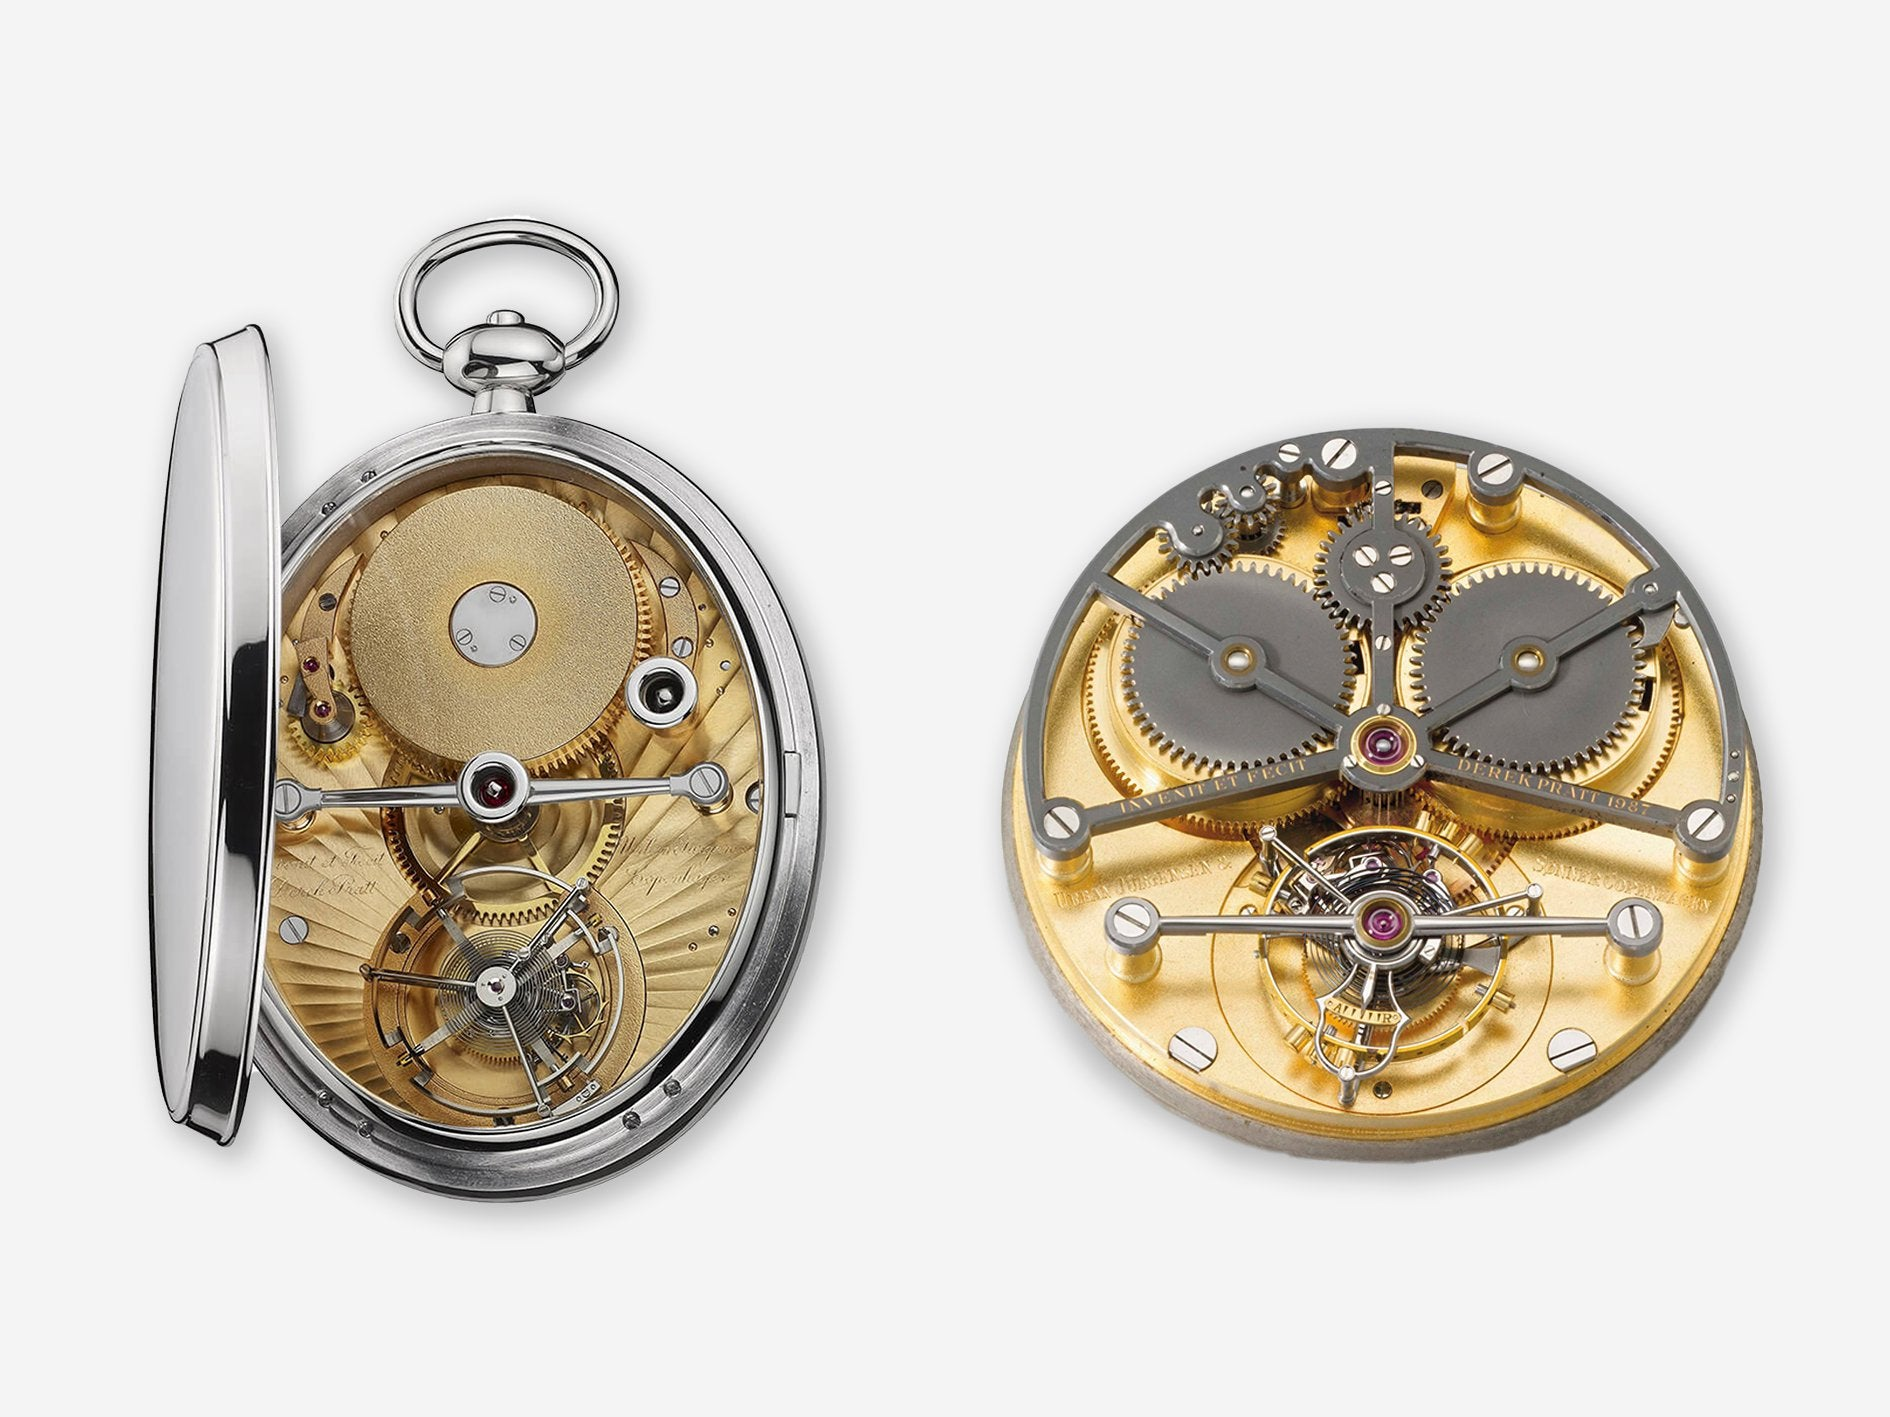 Derek Pratt watch movements in Three Watchmakers' Unfinished Watches for A Collected Man London